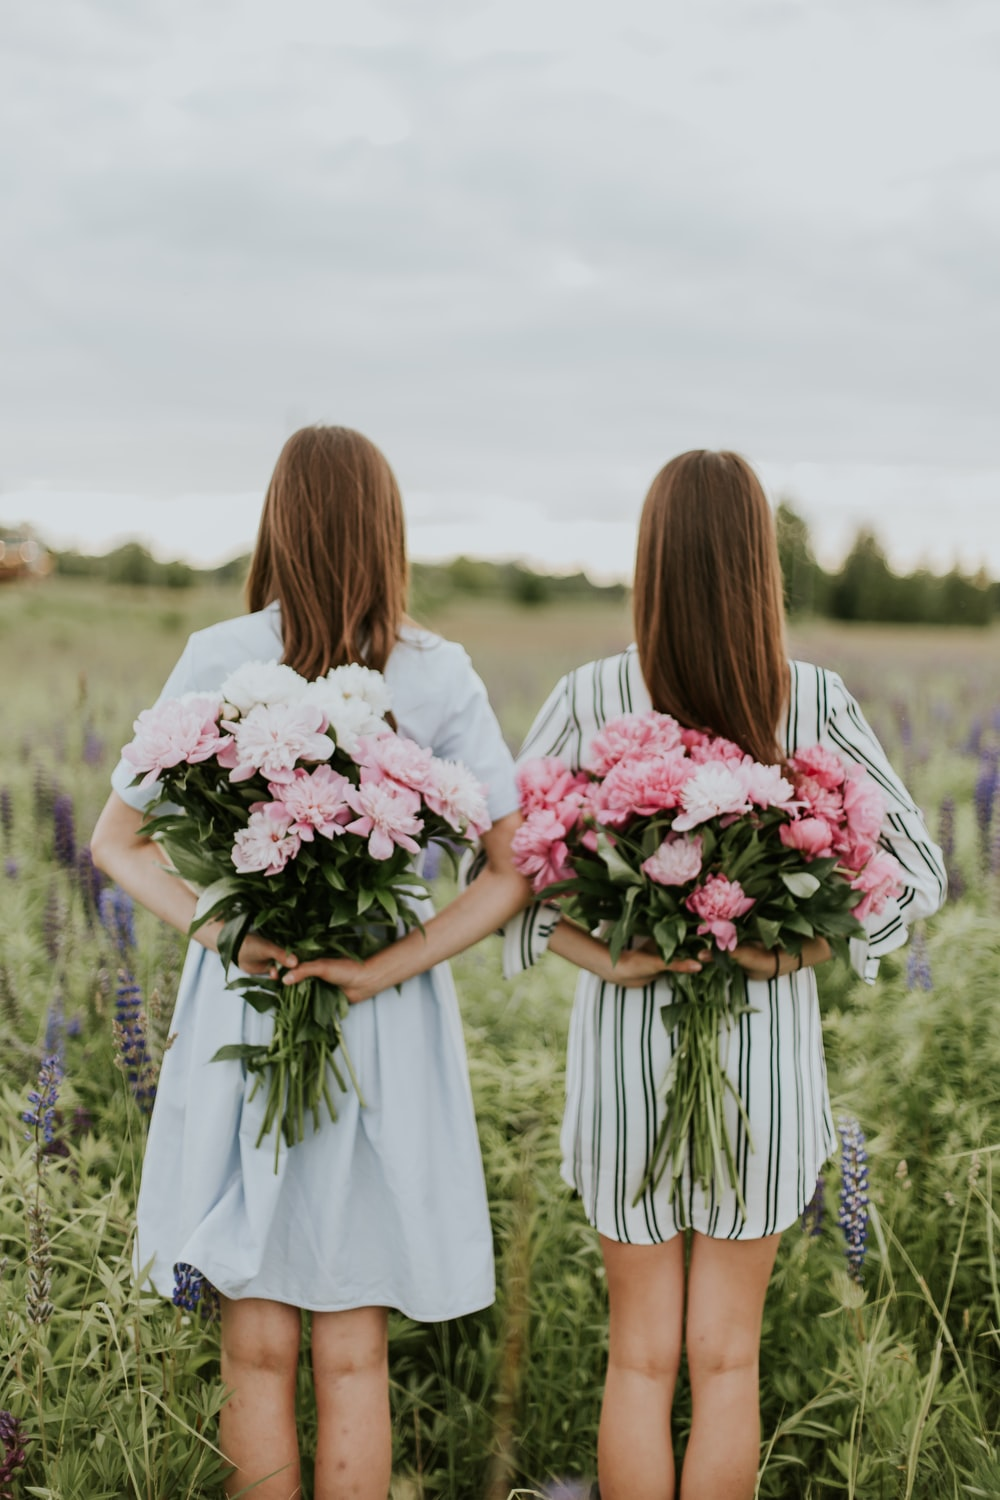 photo of two woman holding flower bouquets